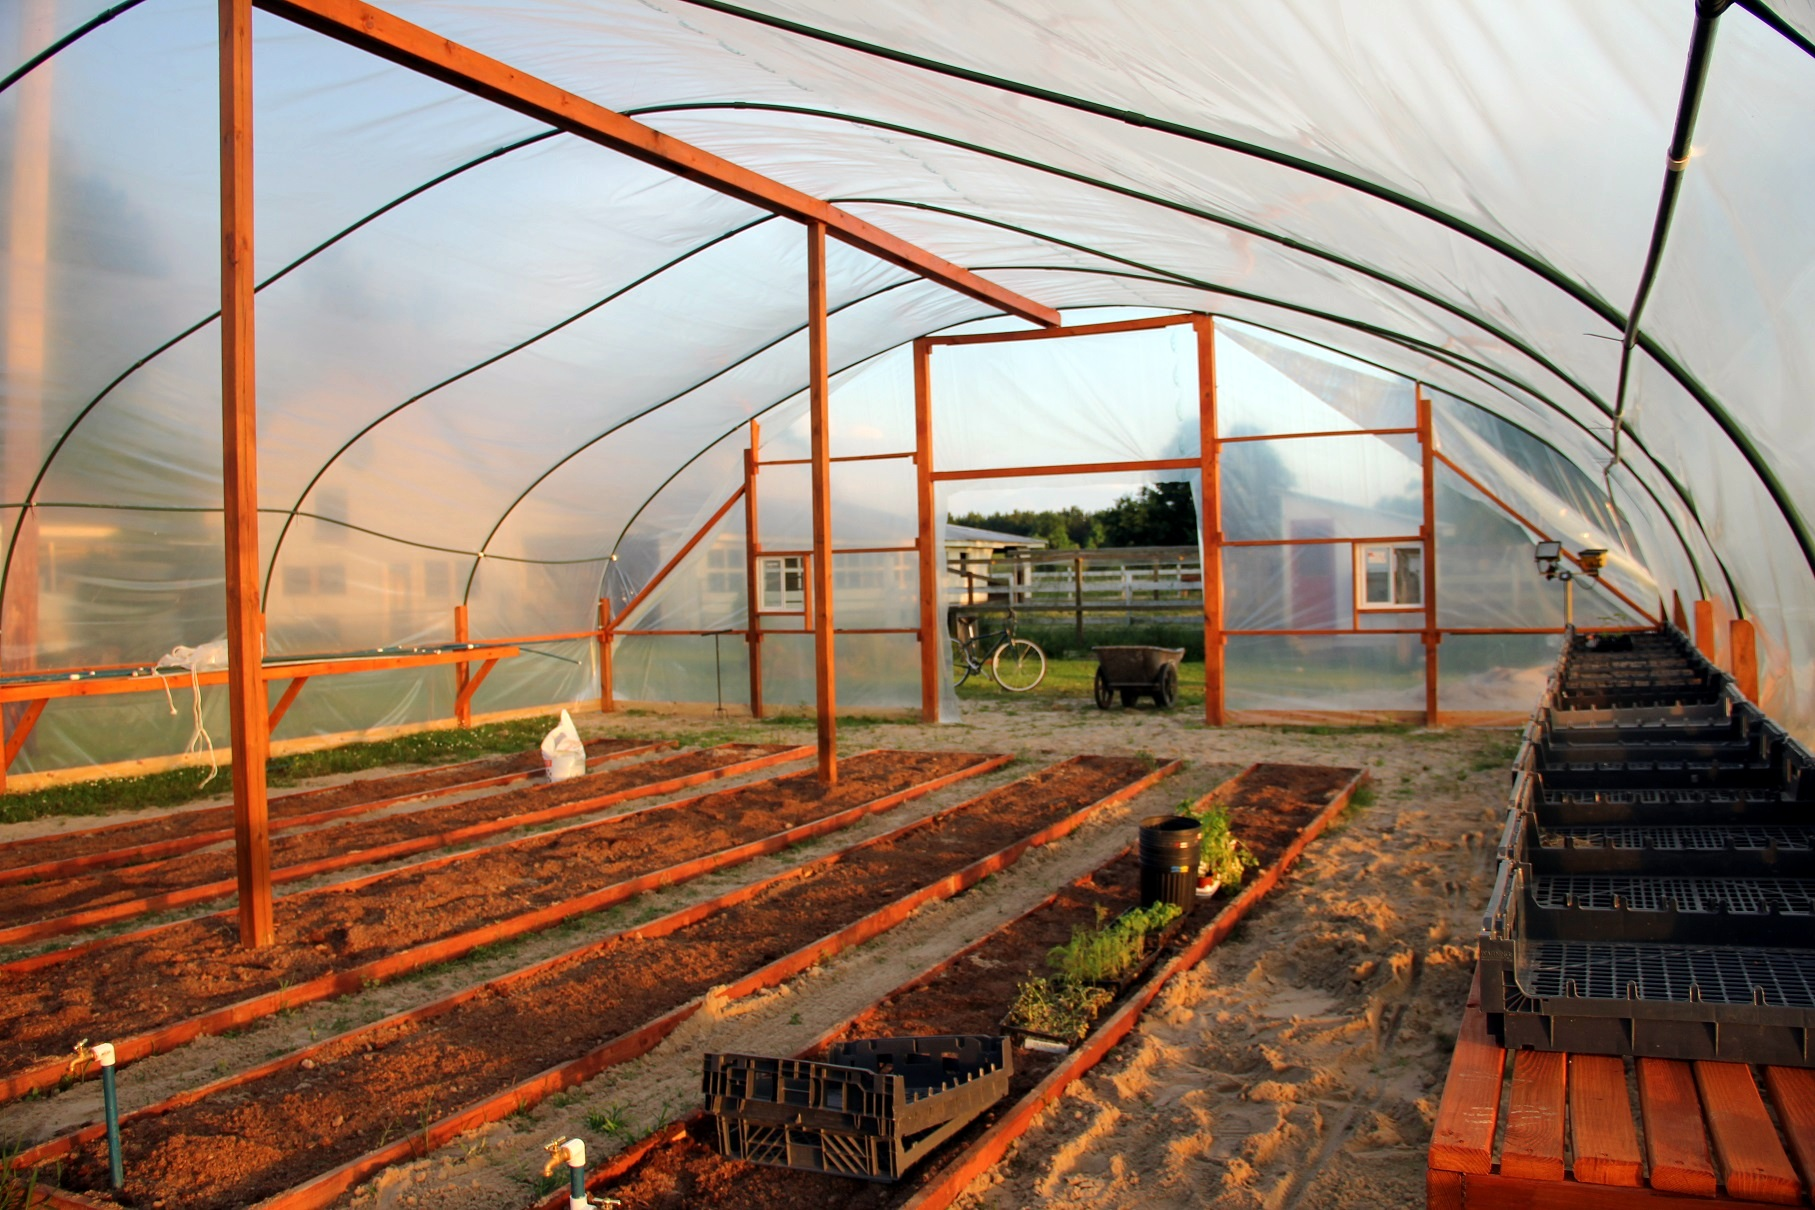 greenhouse at sunset.jpg